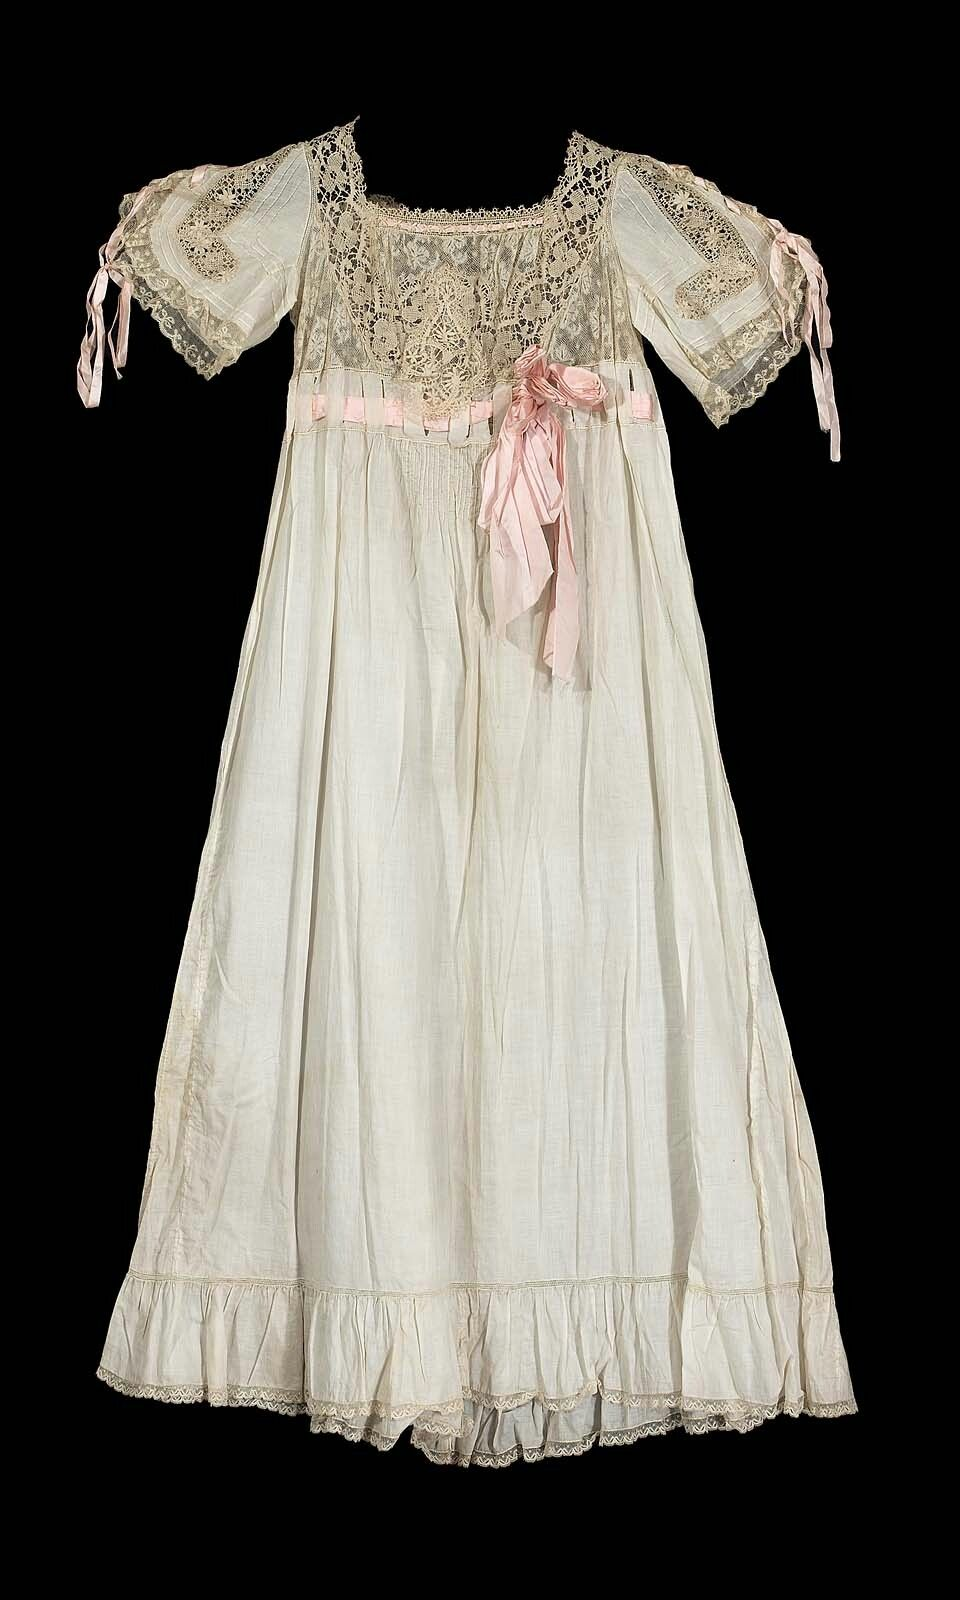 a521a73e41 Nightgown French About 1900. Nightgown French About 1900 Vintage ...